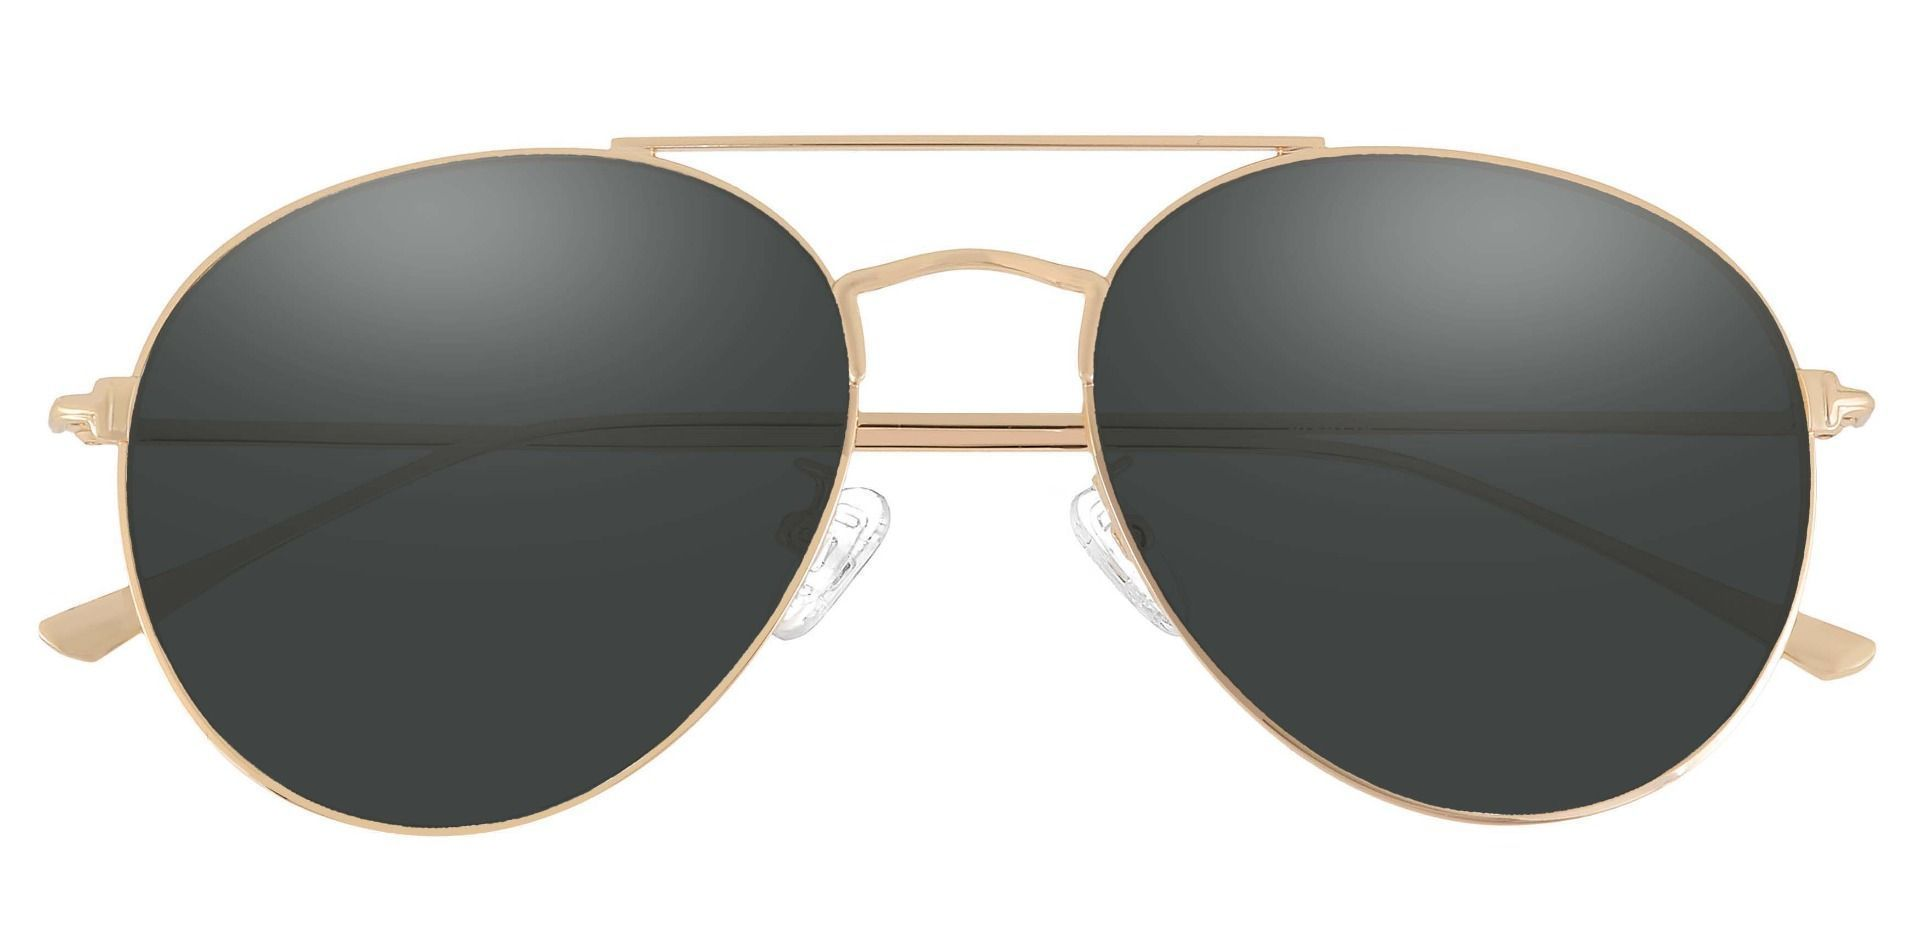 Canon Aviator Single Vision Sunglasses - Gold Frame With Gray Lenses